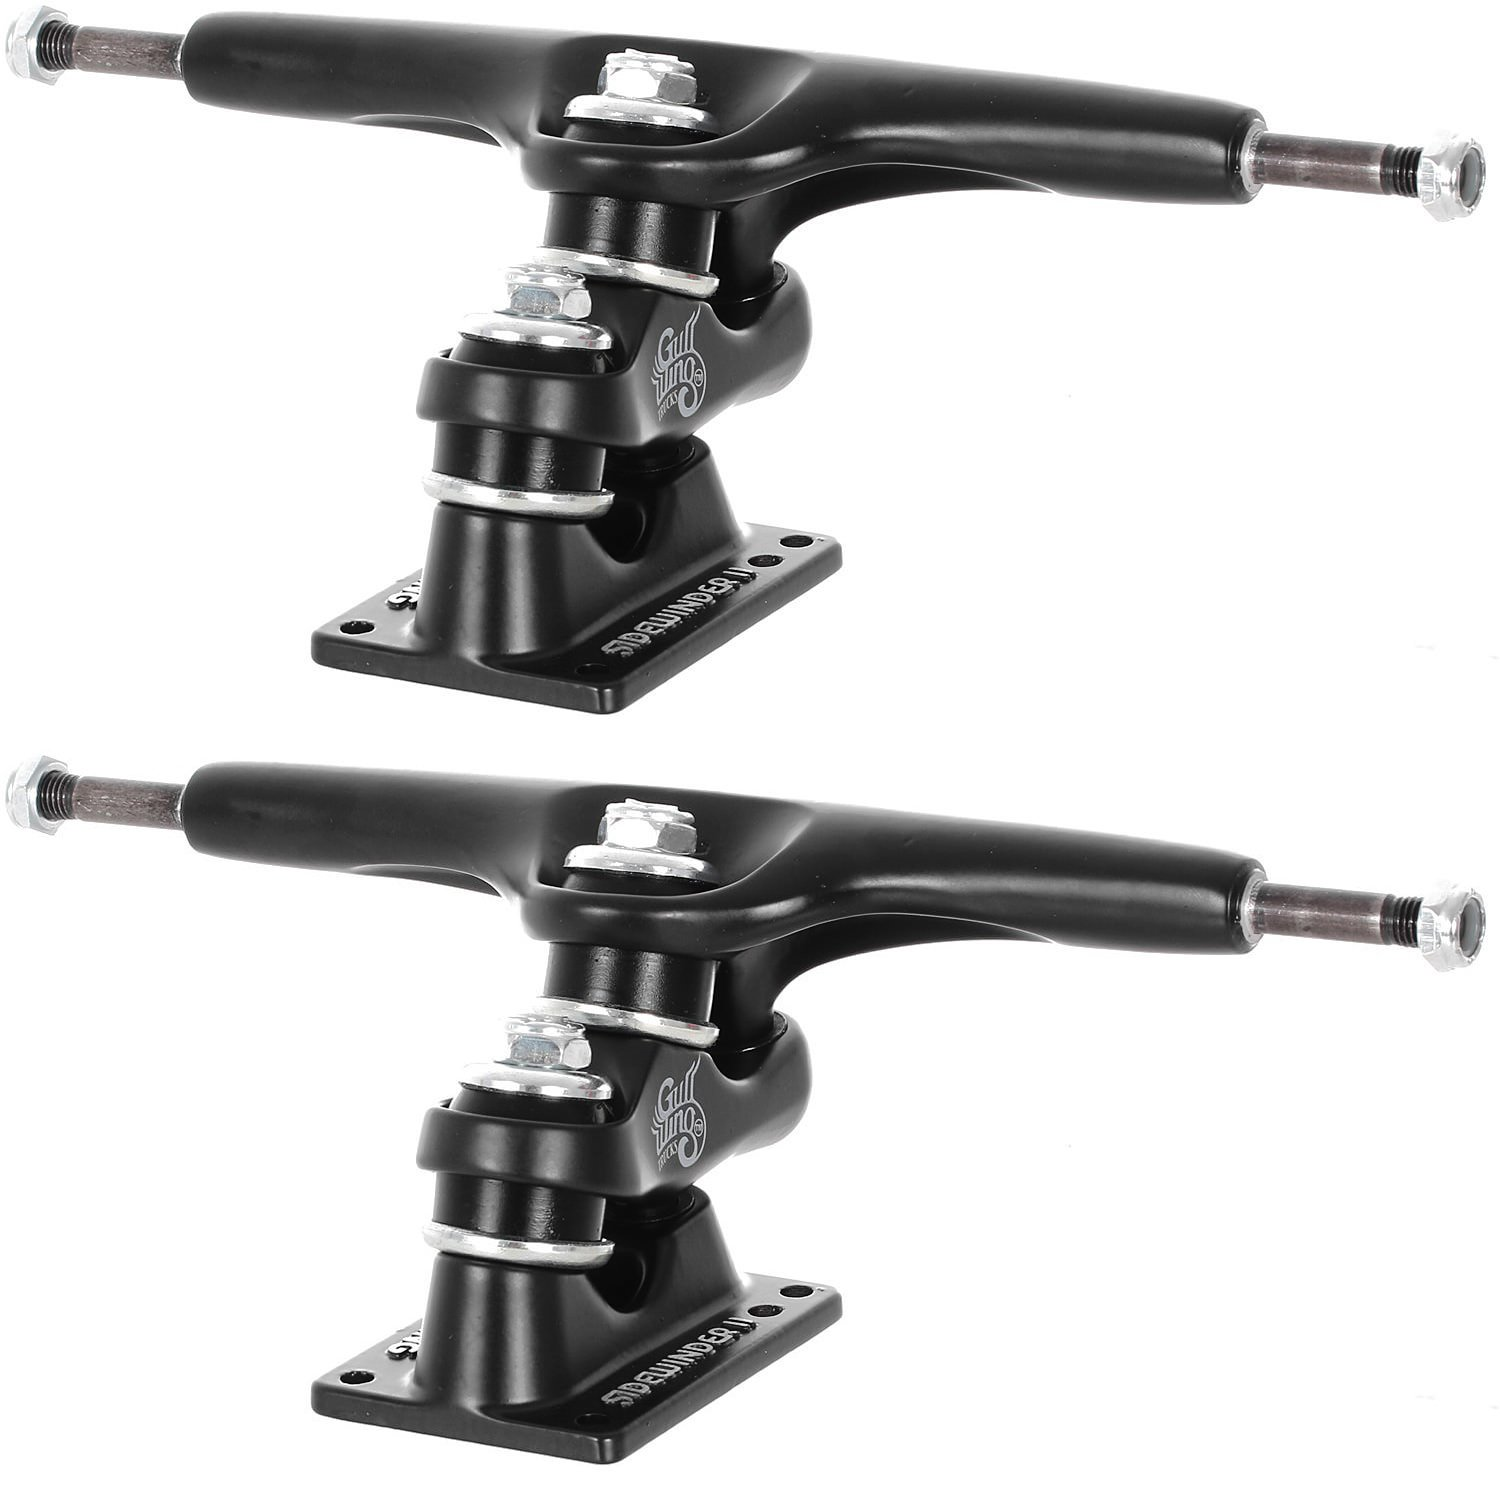 Gullwing Sidewinder II Longboard Trucks - Set of 2, 159mm Hanger/9'' Axle, Black